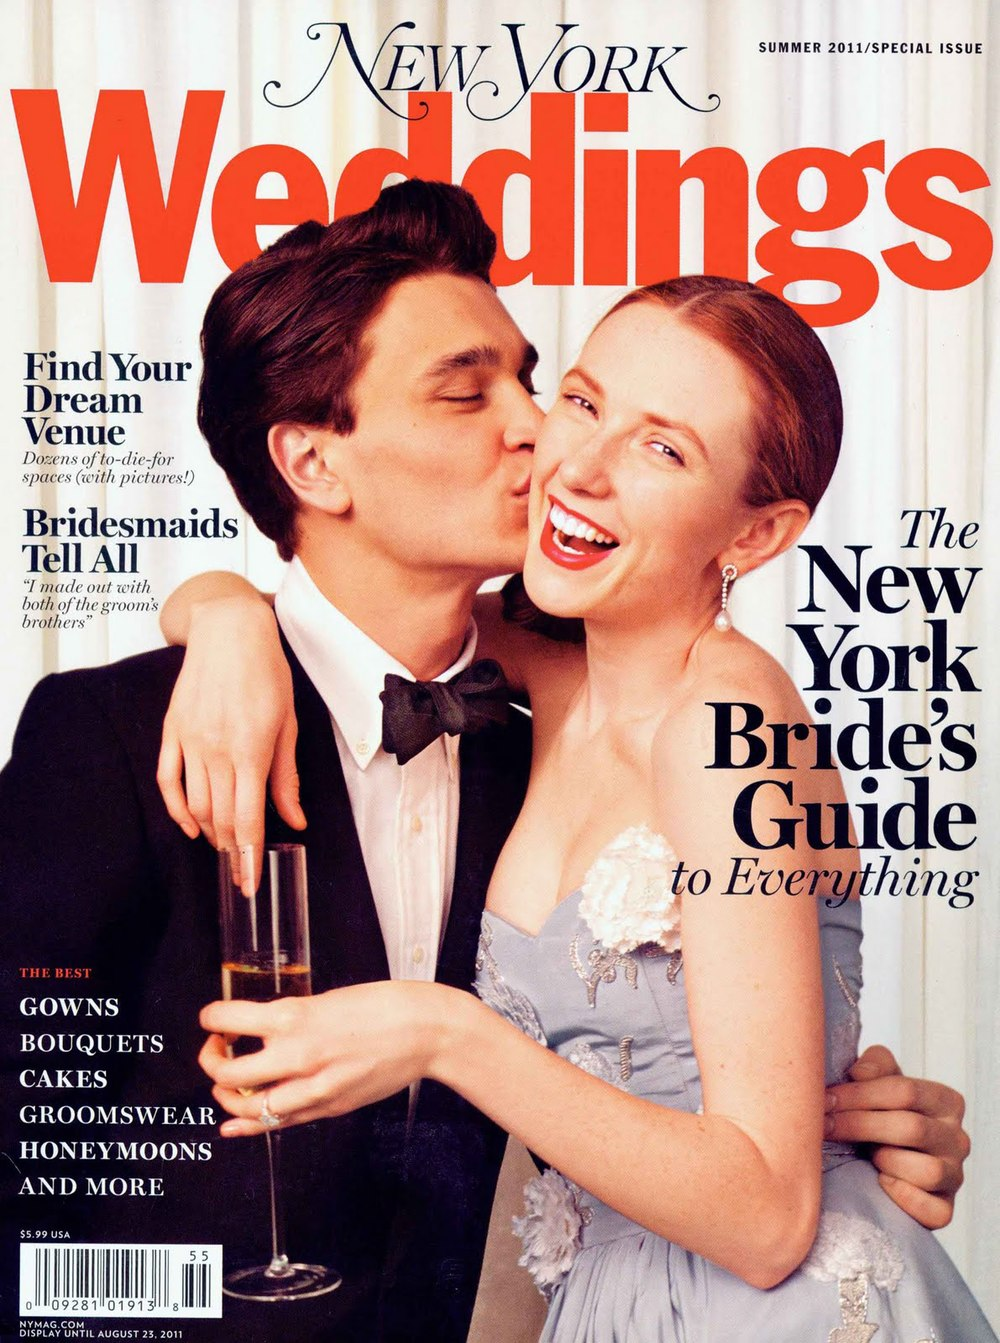 NY-MAG-WEDDINGS-C_web.jpg